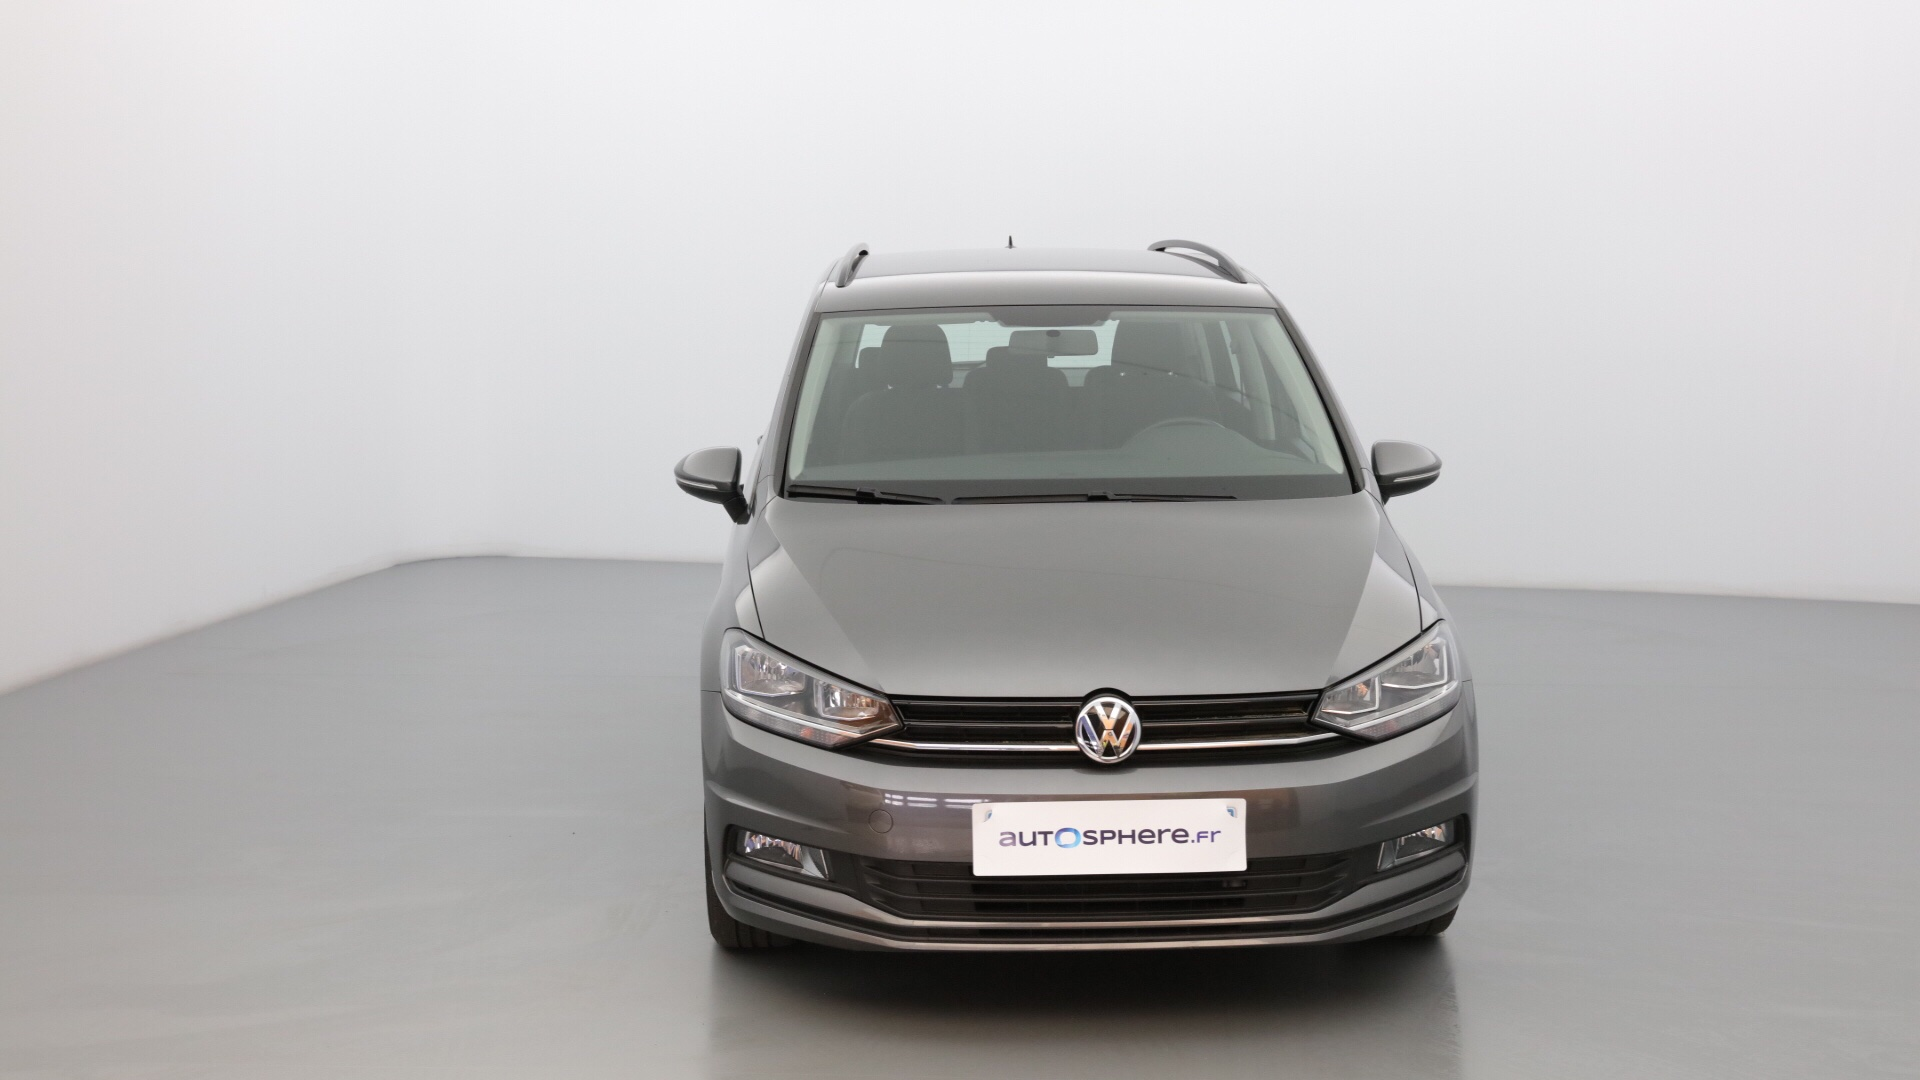 VOLKSWAGEN TOURAN 1.6 TDI 110CH BLUEMOTION TECHNOLOGY FAP TRENDLINE BUSINESS 5 PLACES - Miniature 2